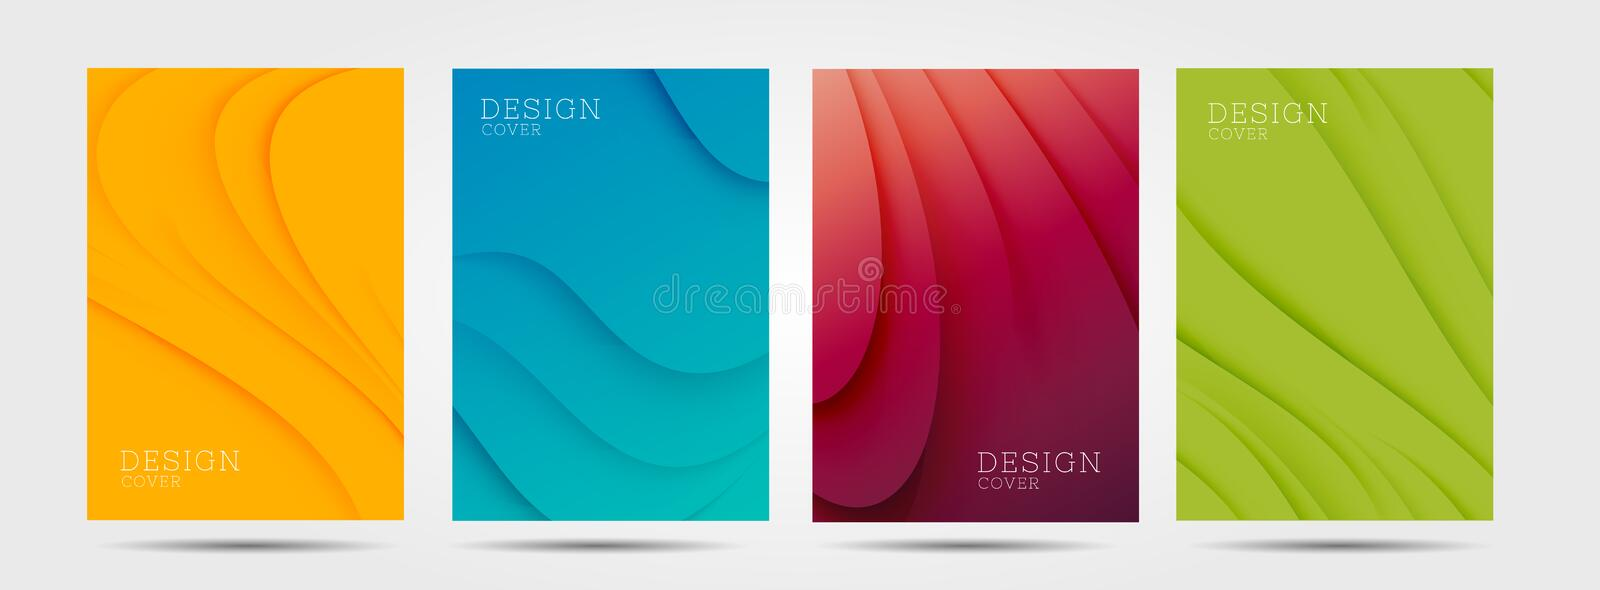 Set of colourful posters with abstract waves graphic in four colours: yellow, red, blue, green royalty free illustration